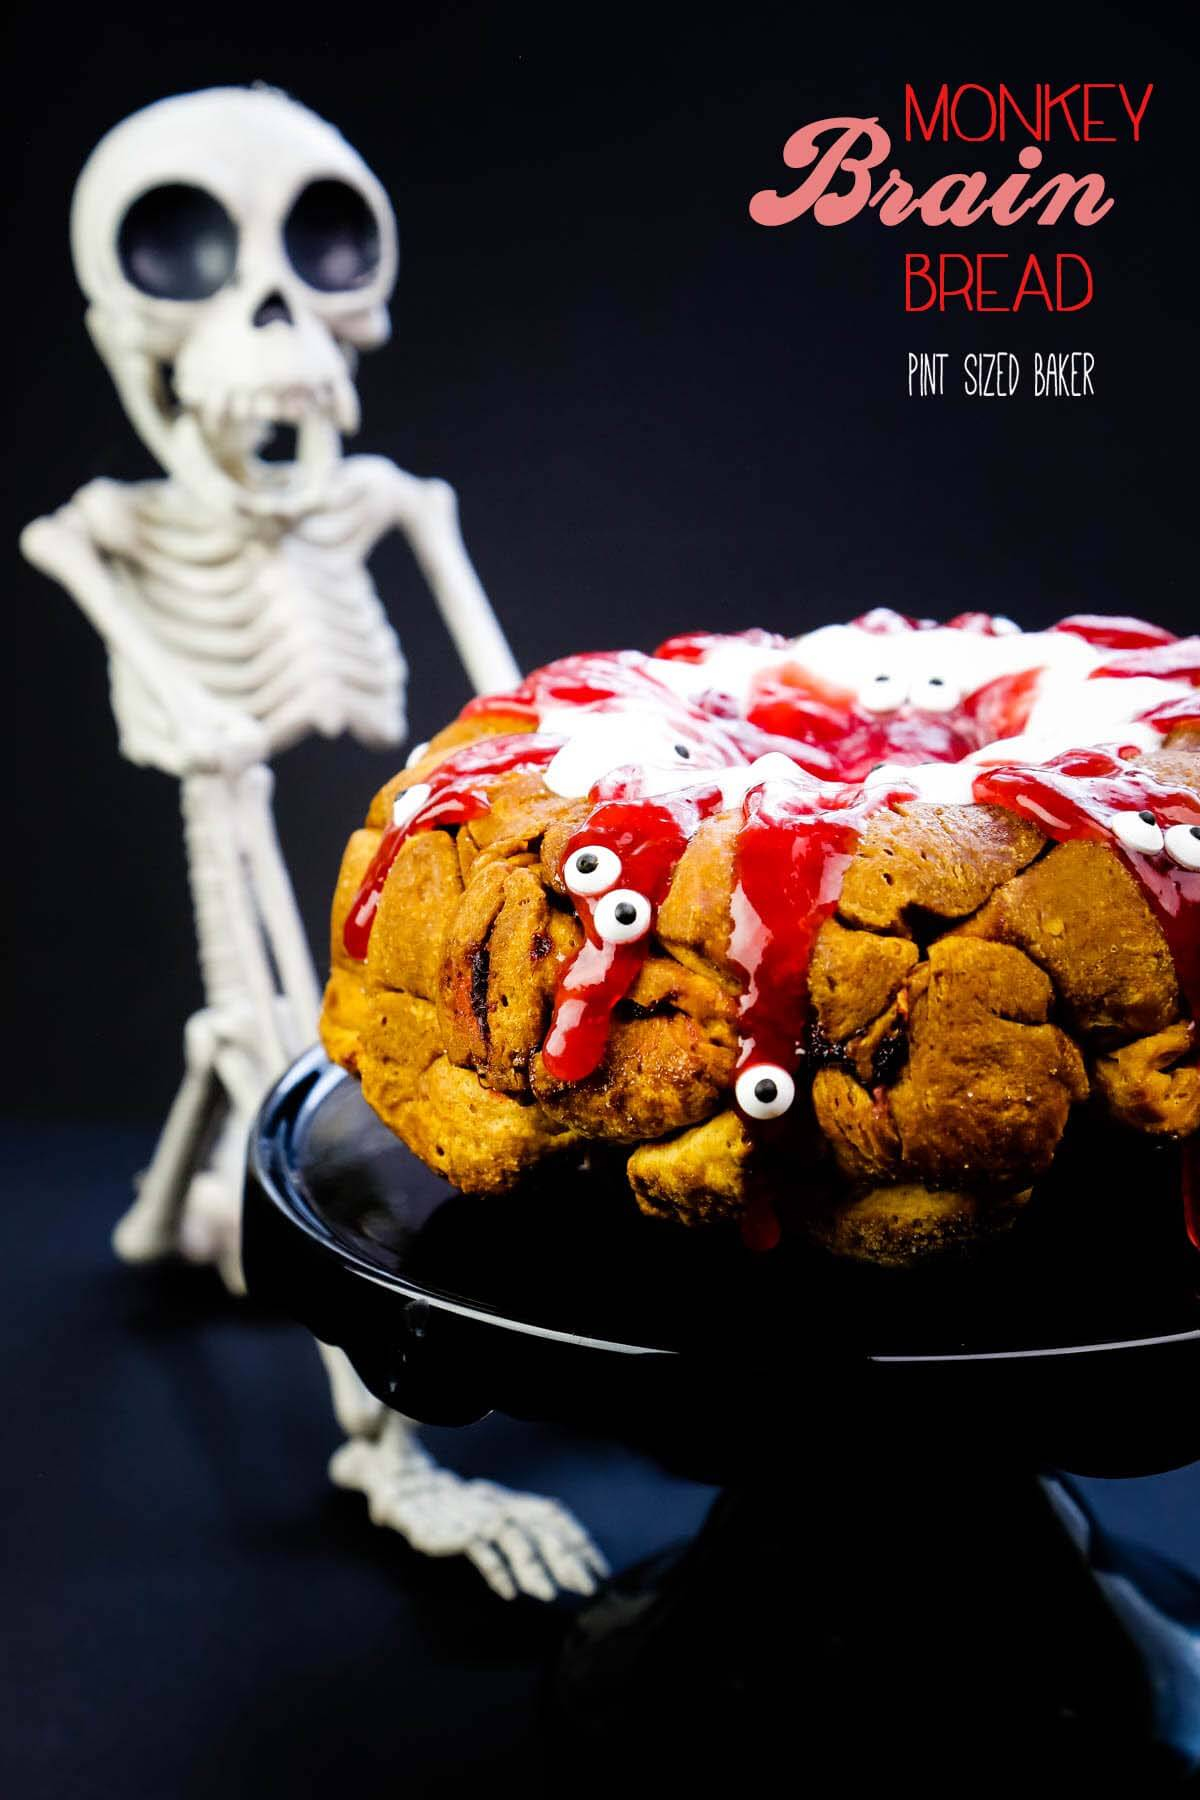 Get a bit gruesome this Halloween when you serve the family a classic Monkey Bread for breakfast when your make Monkey Brain Bread instead.